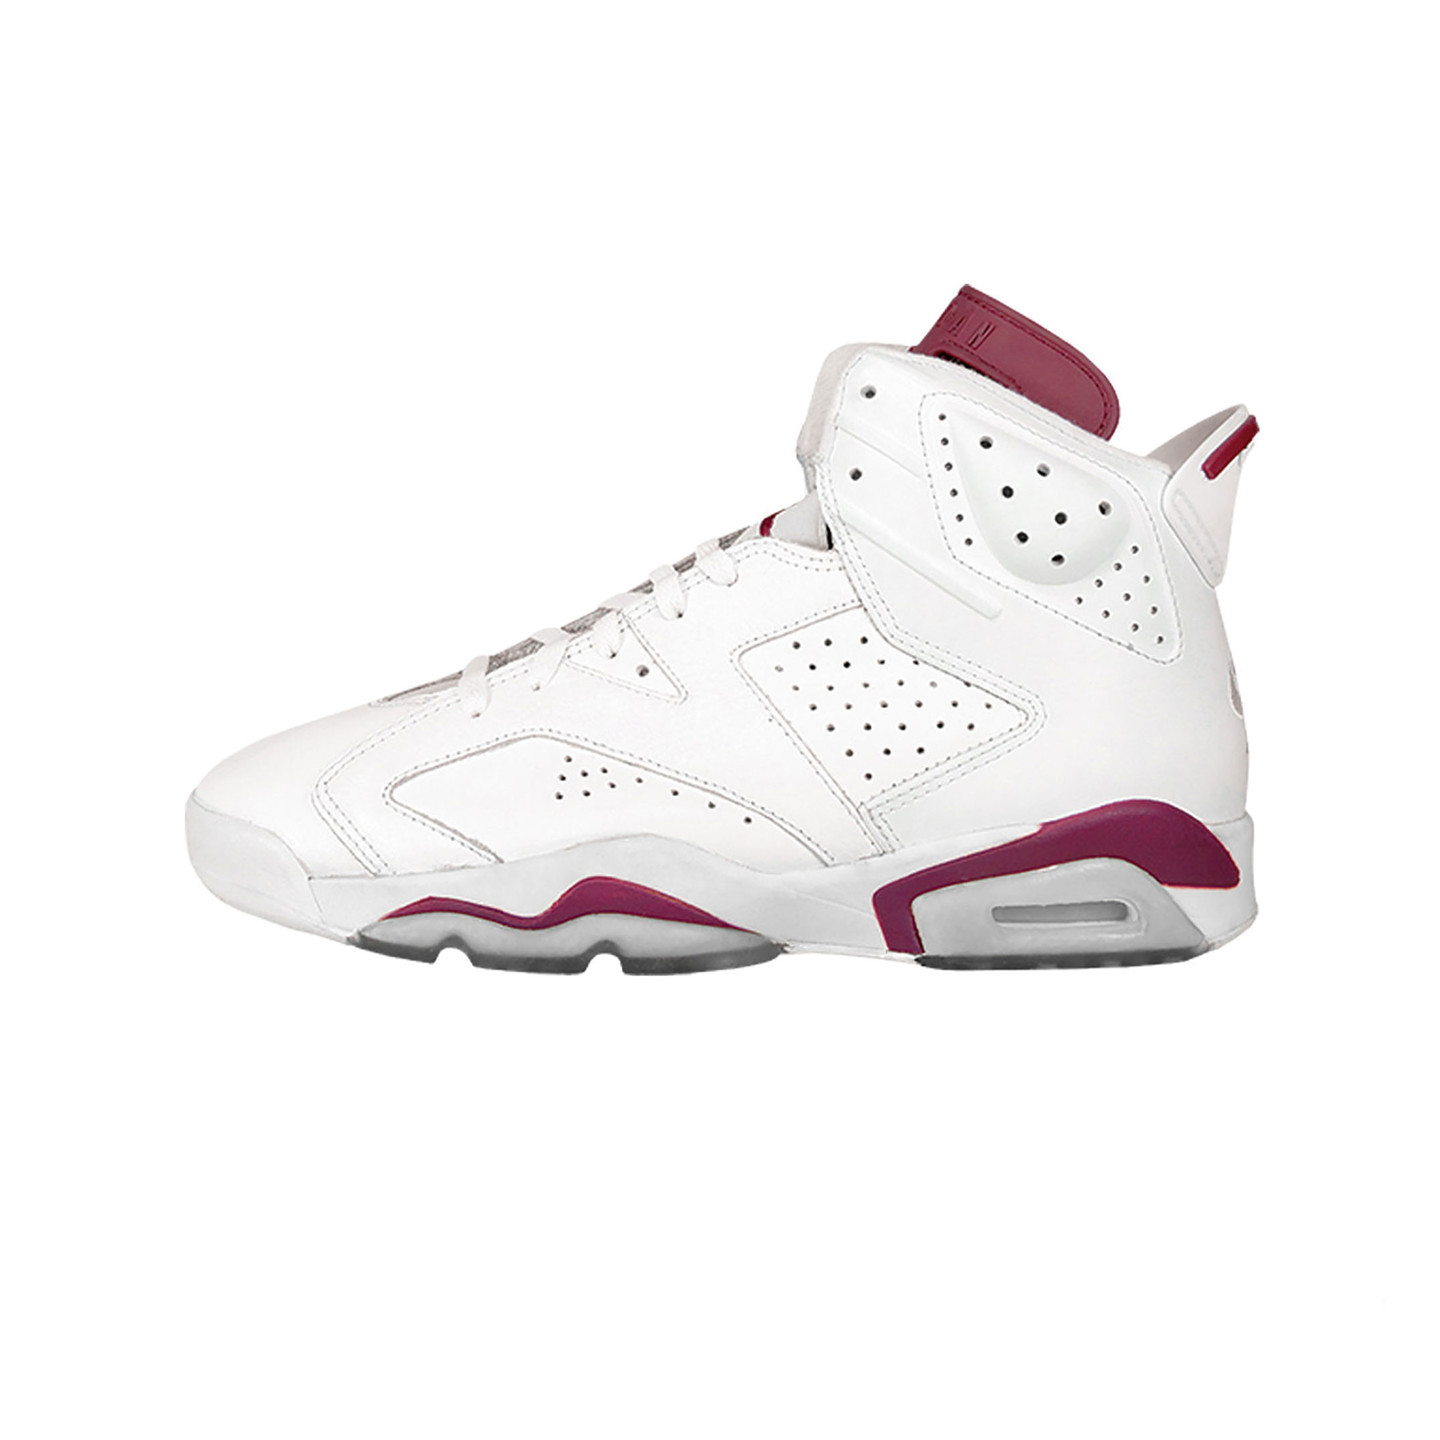 Jordan Air Jordan 6 Retro GS ´Maroon´ Off White / New Maroon 384665-116-36.5